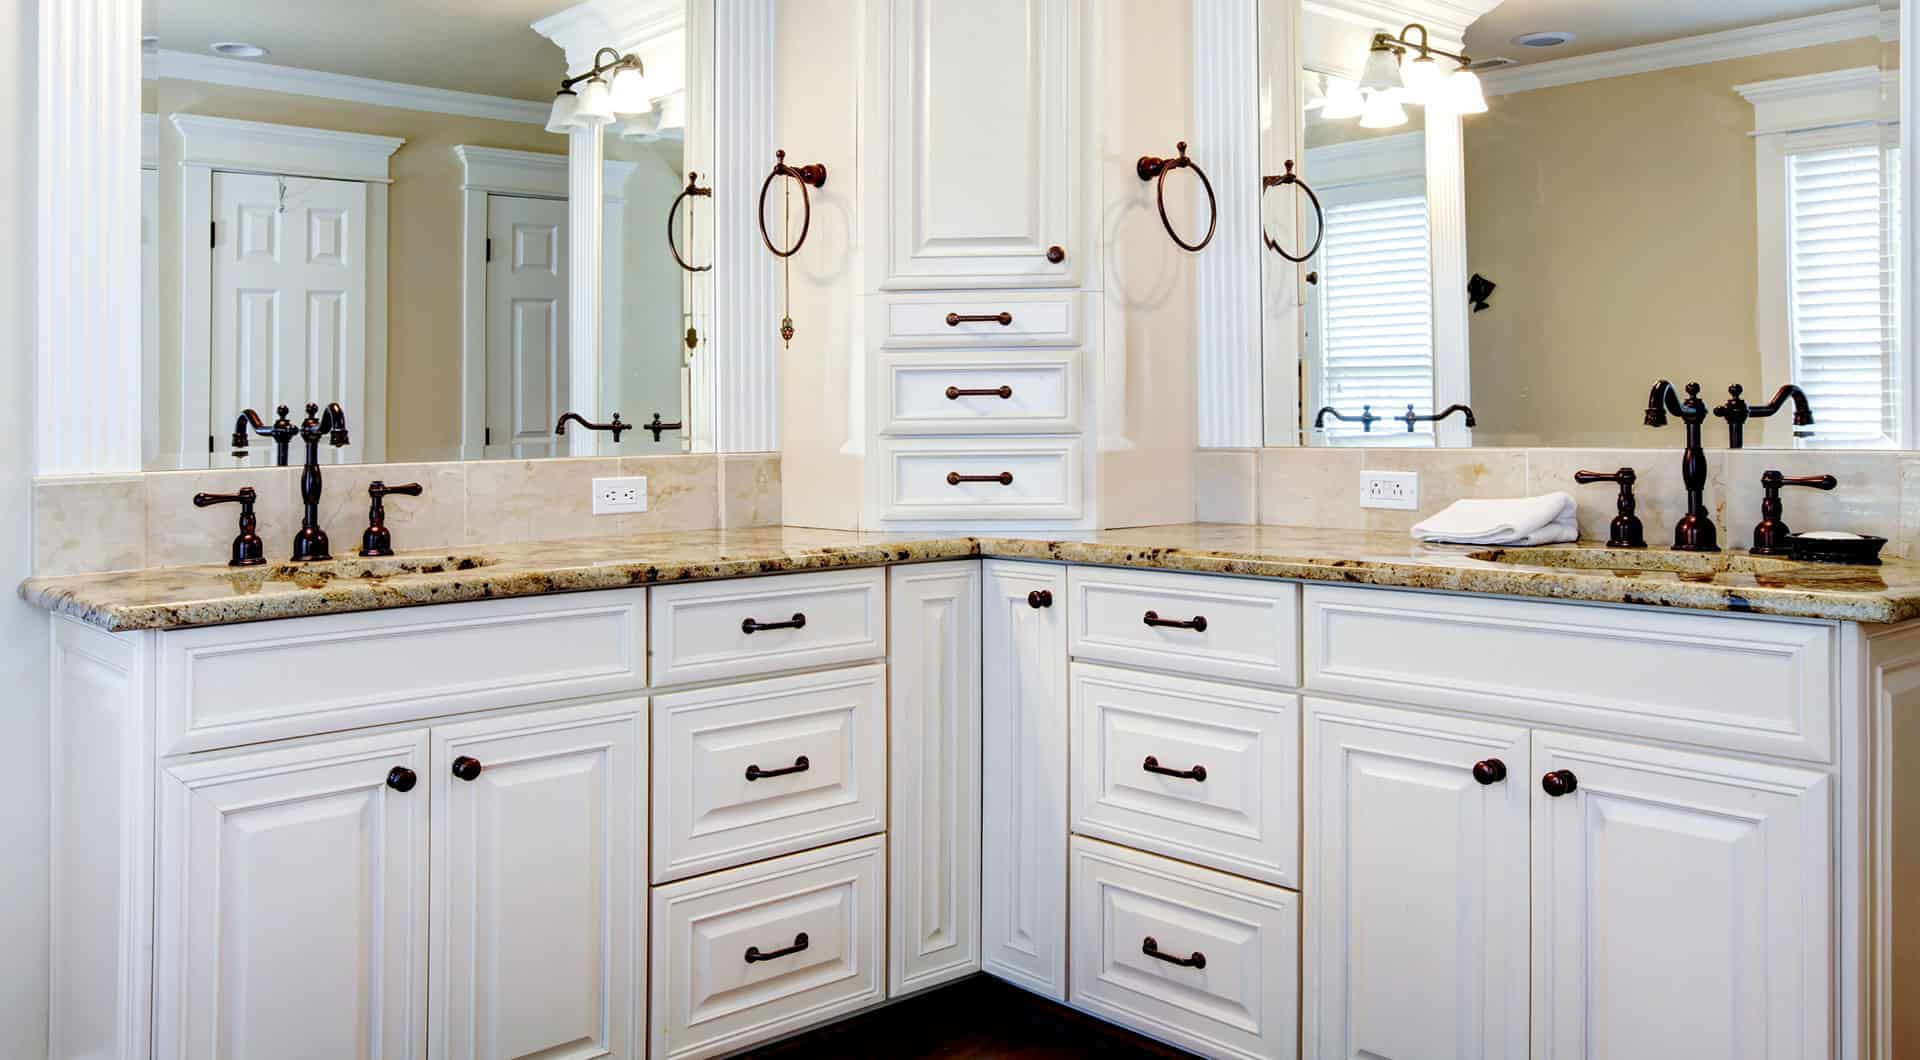 Cabinet Refinishing Services, Vanity Resurfacing Services